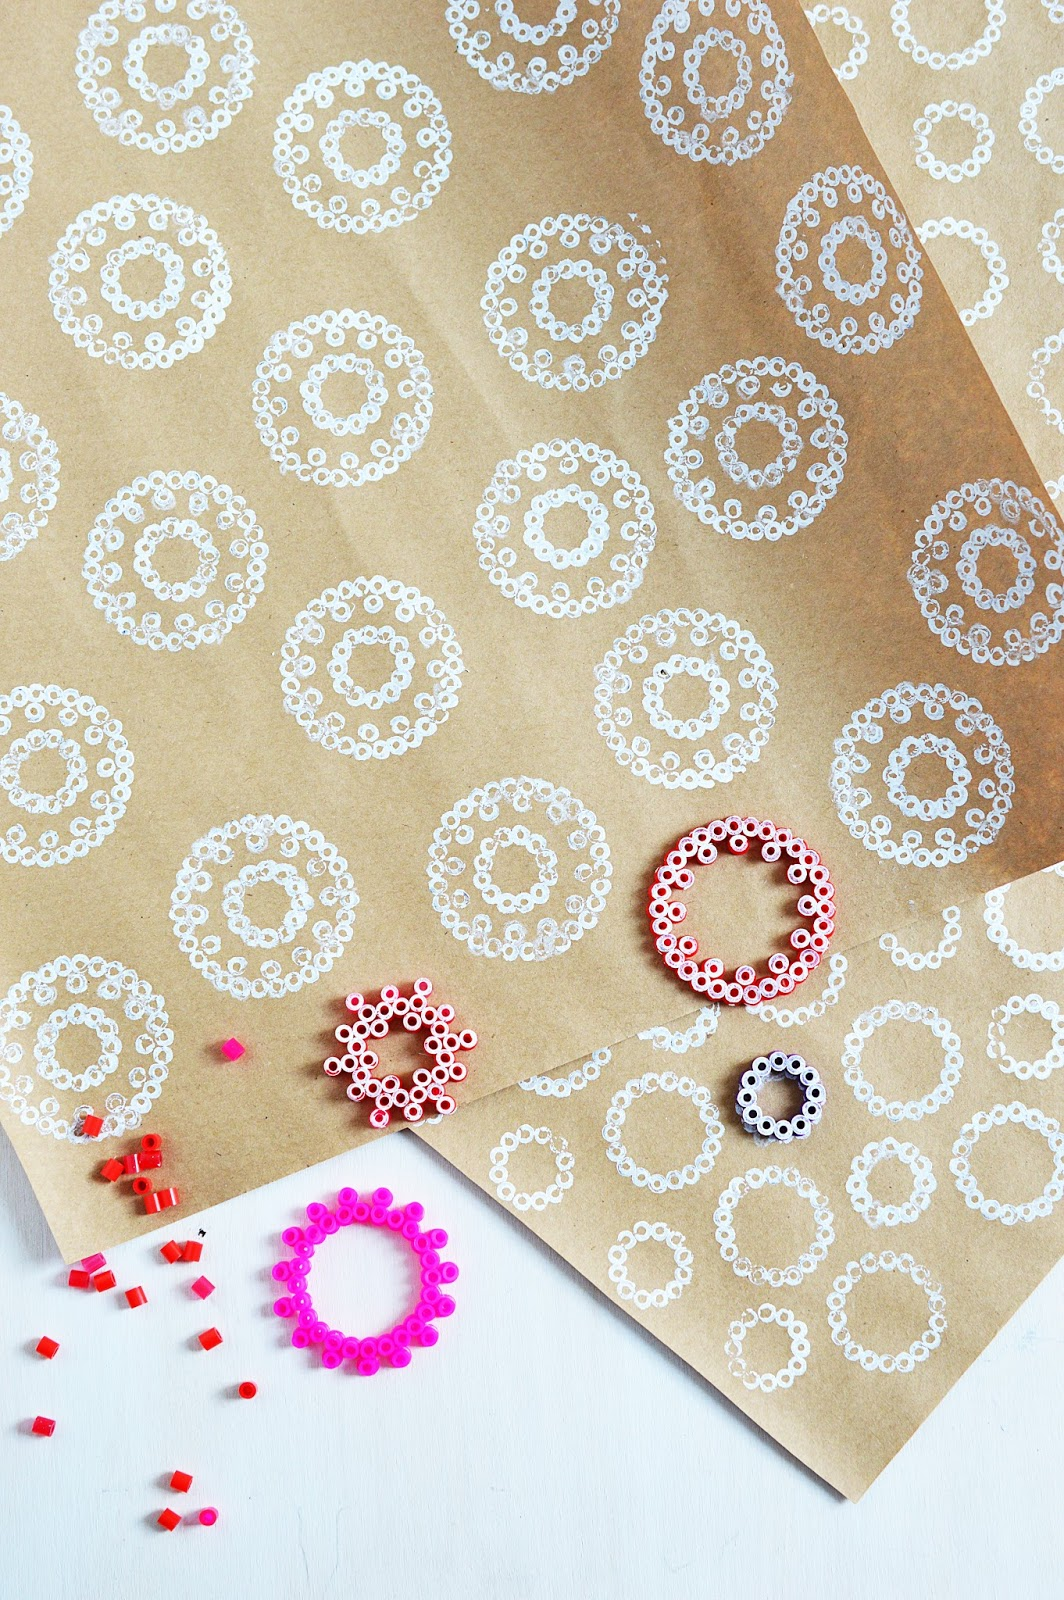 DIY Iron-On Bead Stamps | Stamping with Beads | Motte's Blog